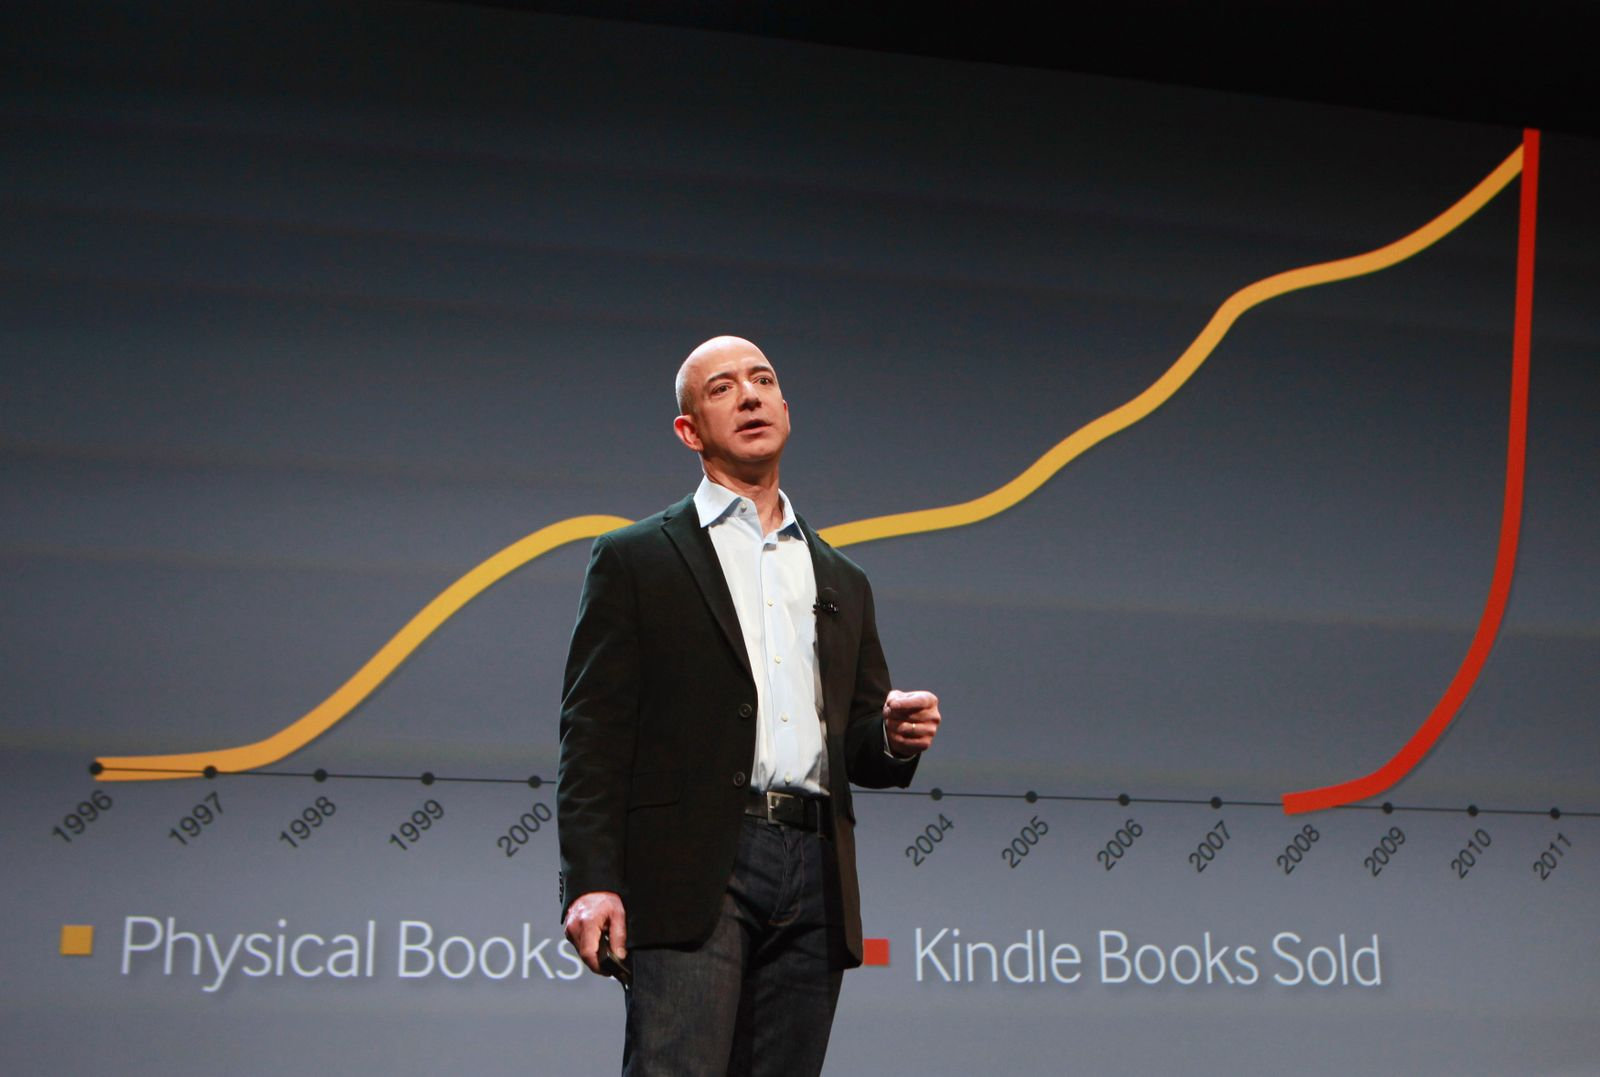 File of Amazon CEO Jeff Bezos speaking at a news conference in front of a graphic showing the rise in sales of Kindle books during the launch of Amazon's new tablets in New York,